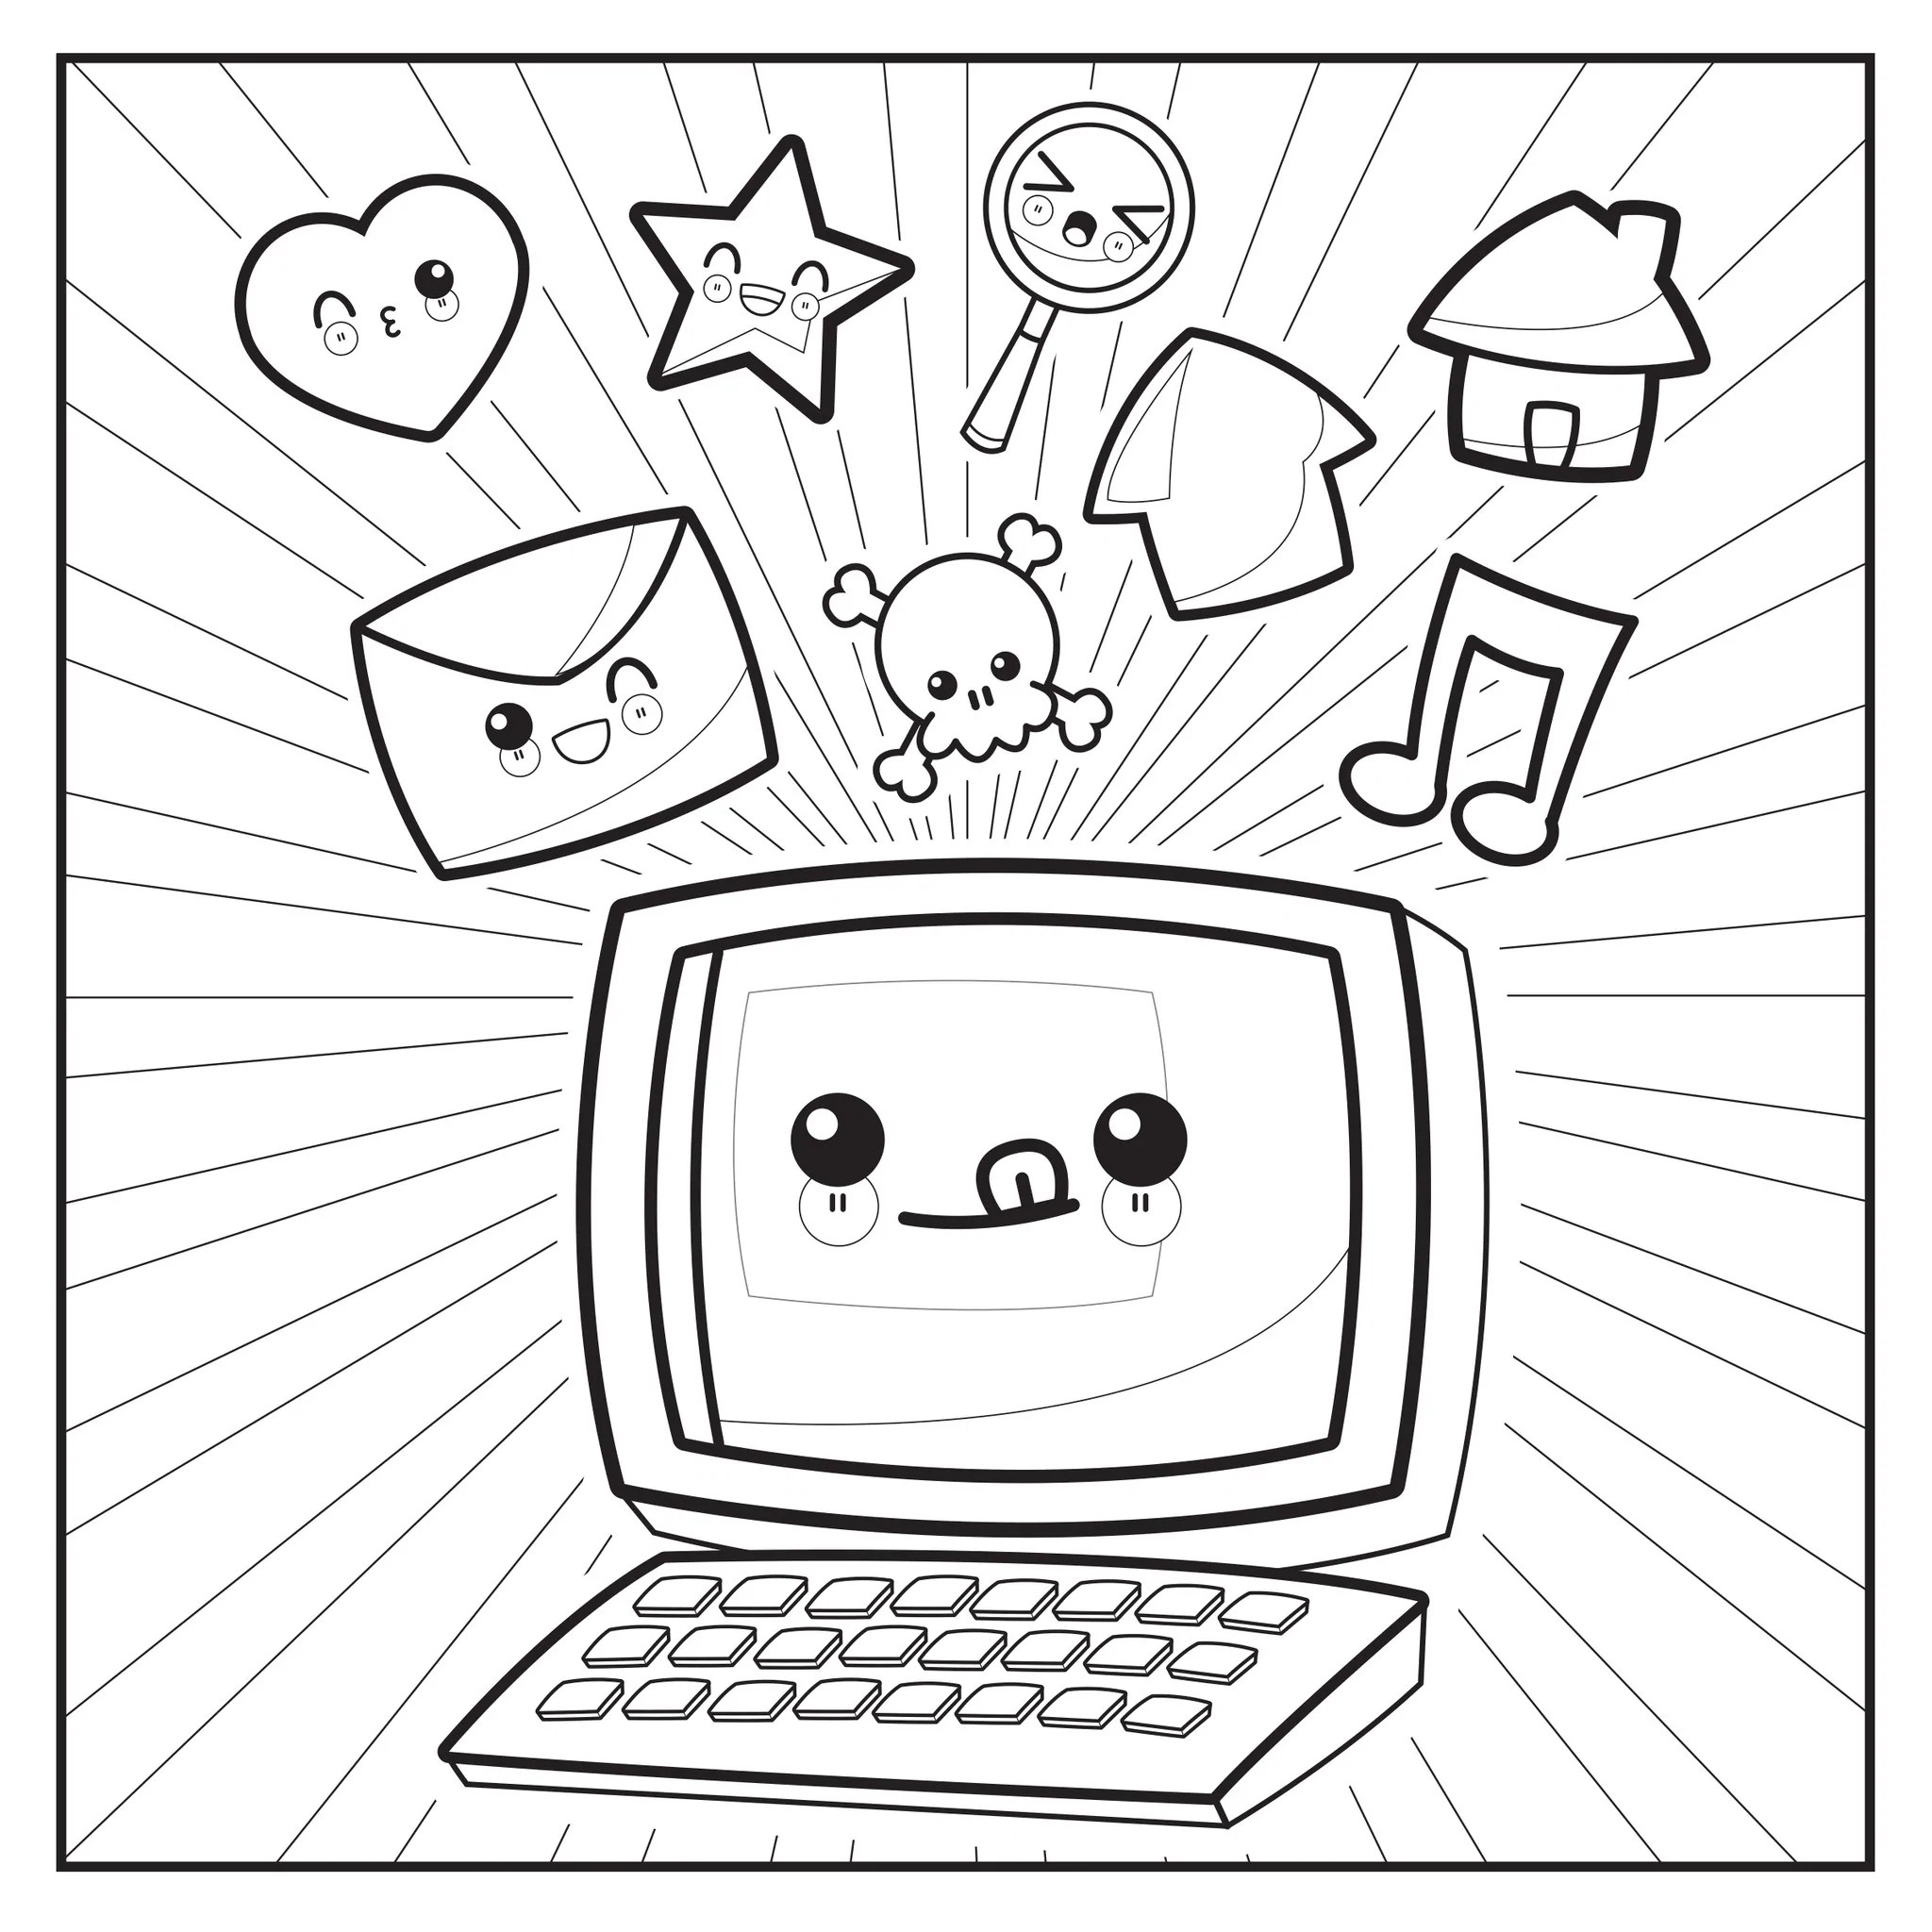 Coloring pages emojis - Pt03 V 1482465049 Quality 80 Strip All Free Coloring Pages